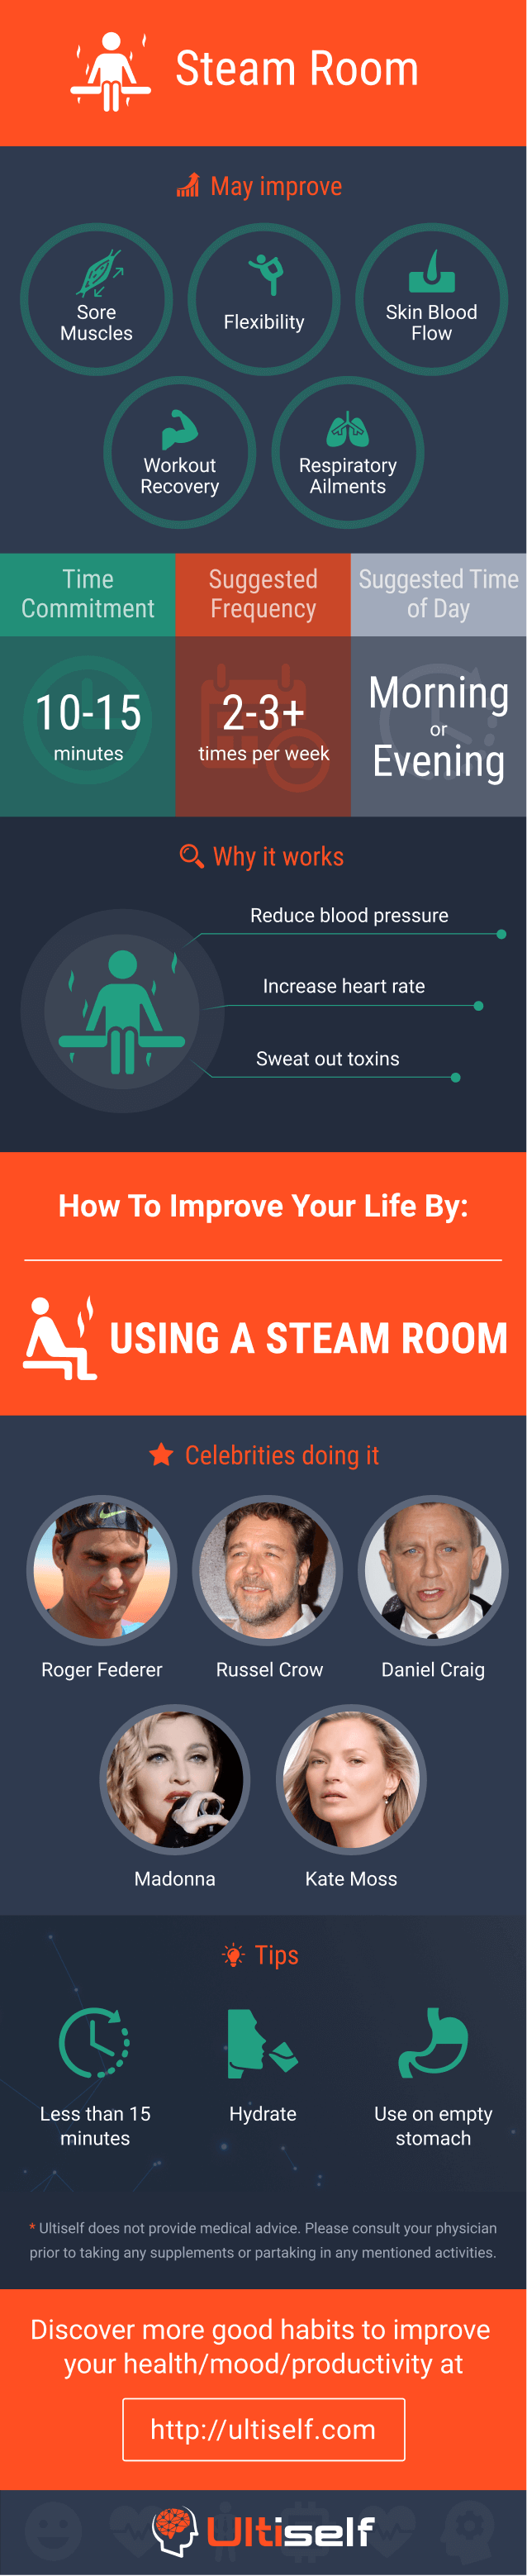 Steam Room infographic